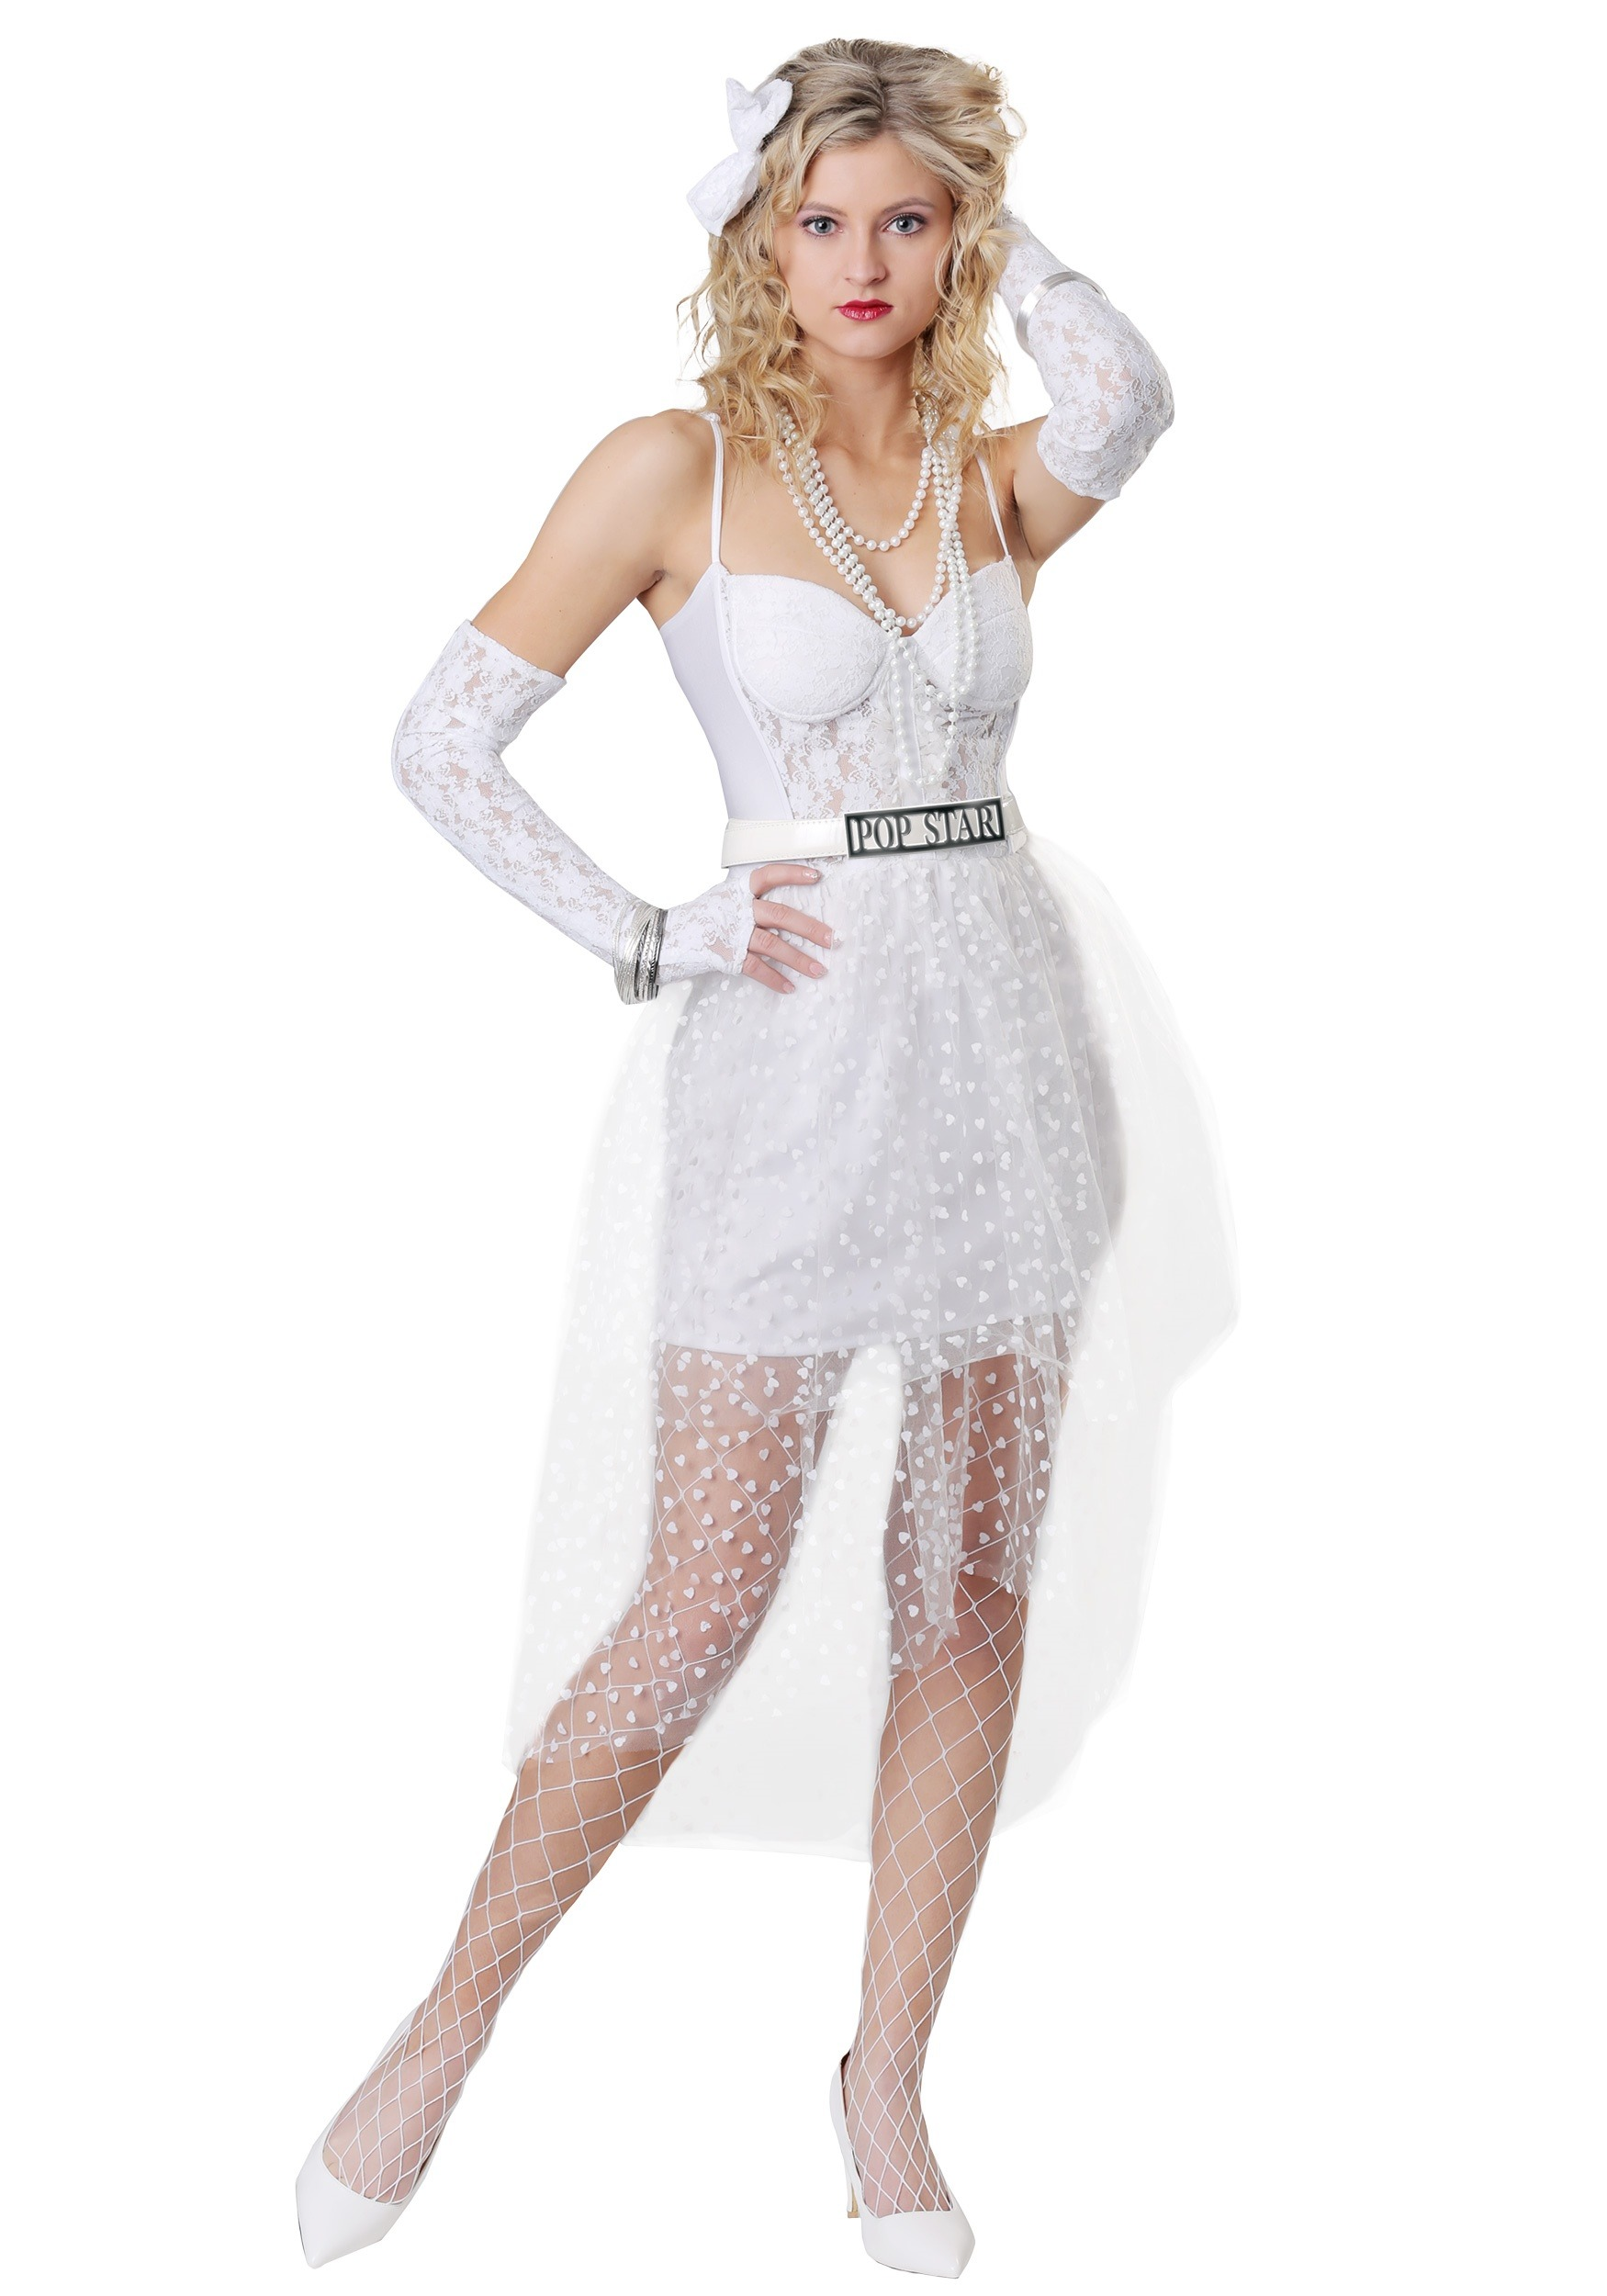 Large Small XS 80s Madonna Costume- White Like a Virgin Bride Costume Outfit- High Quality Corset n Pettiskirt- Plus Size Medium XL 2X